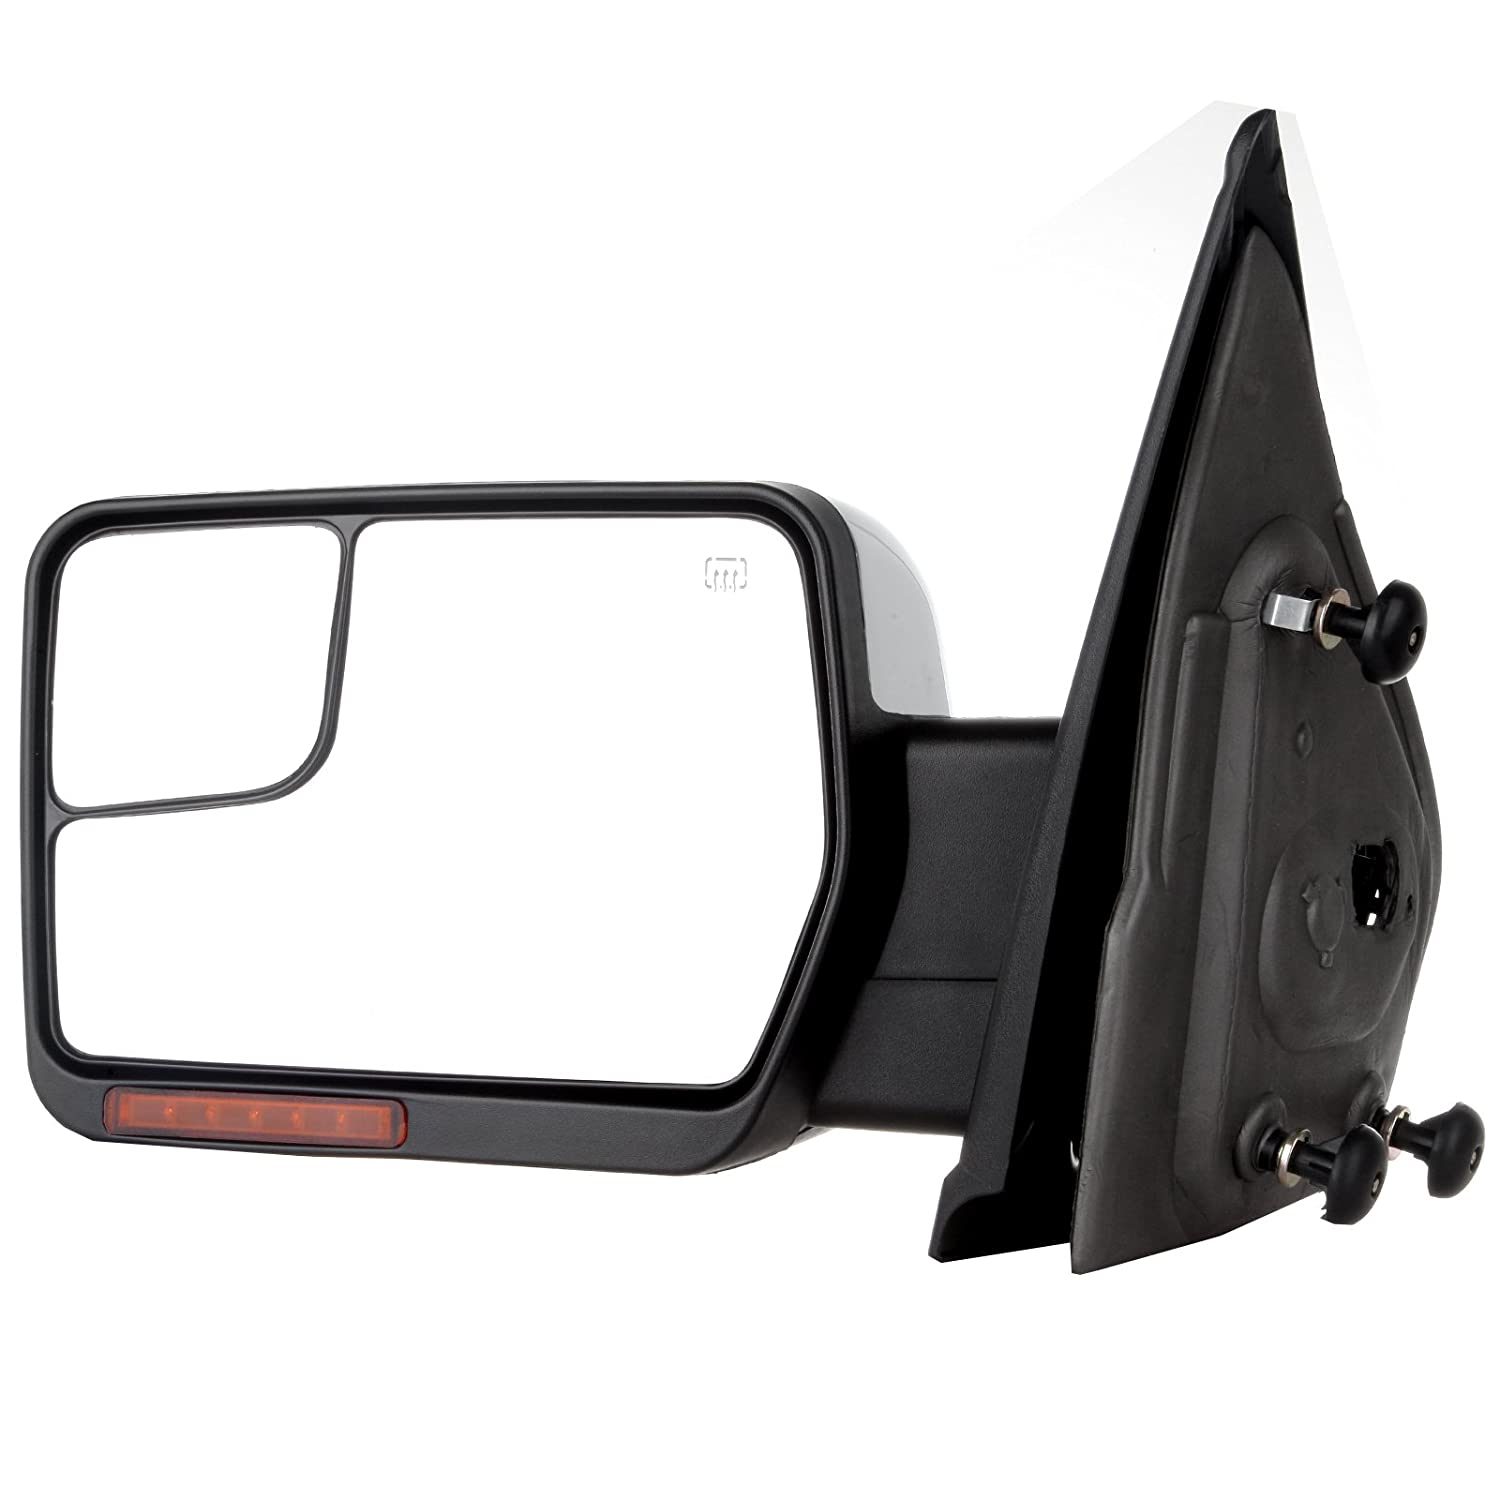 ECCPP Chrome Driver Side View Mirror For 2004-2014 Ford F-150 Power Heated Puddle Signal Light 050927-5211-1830541